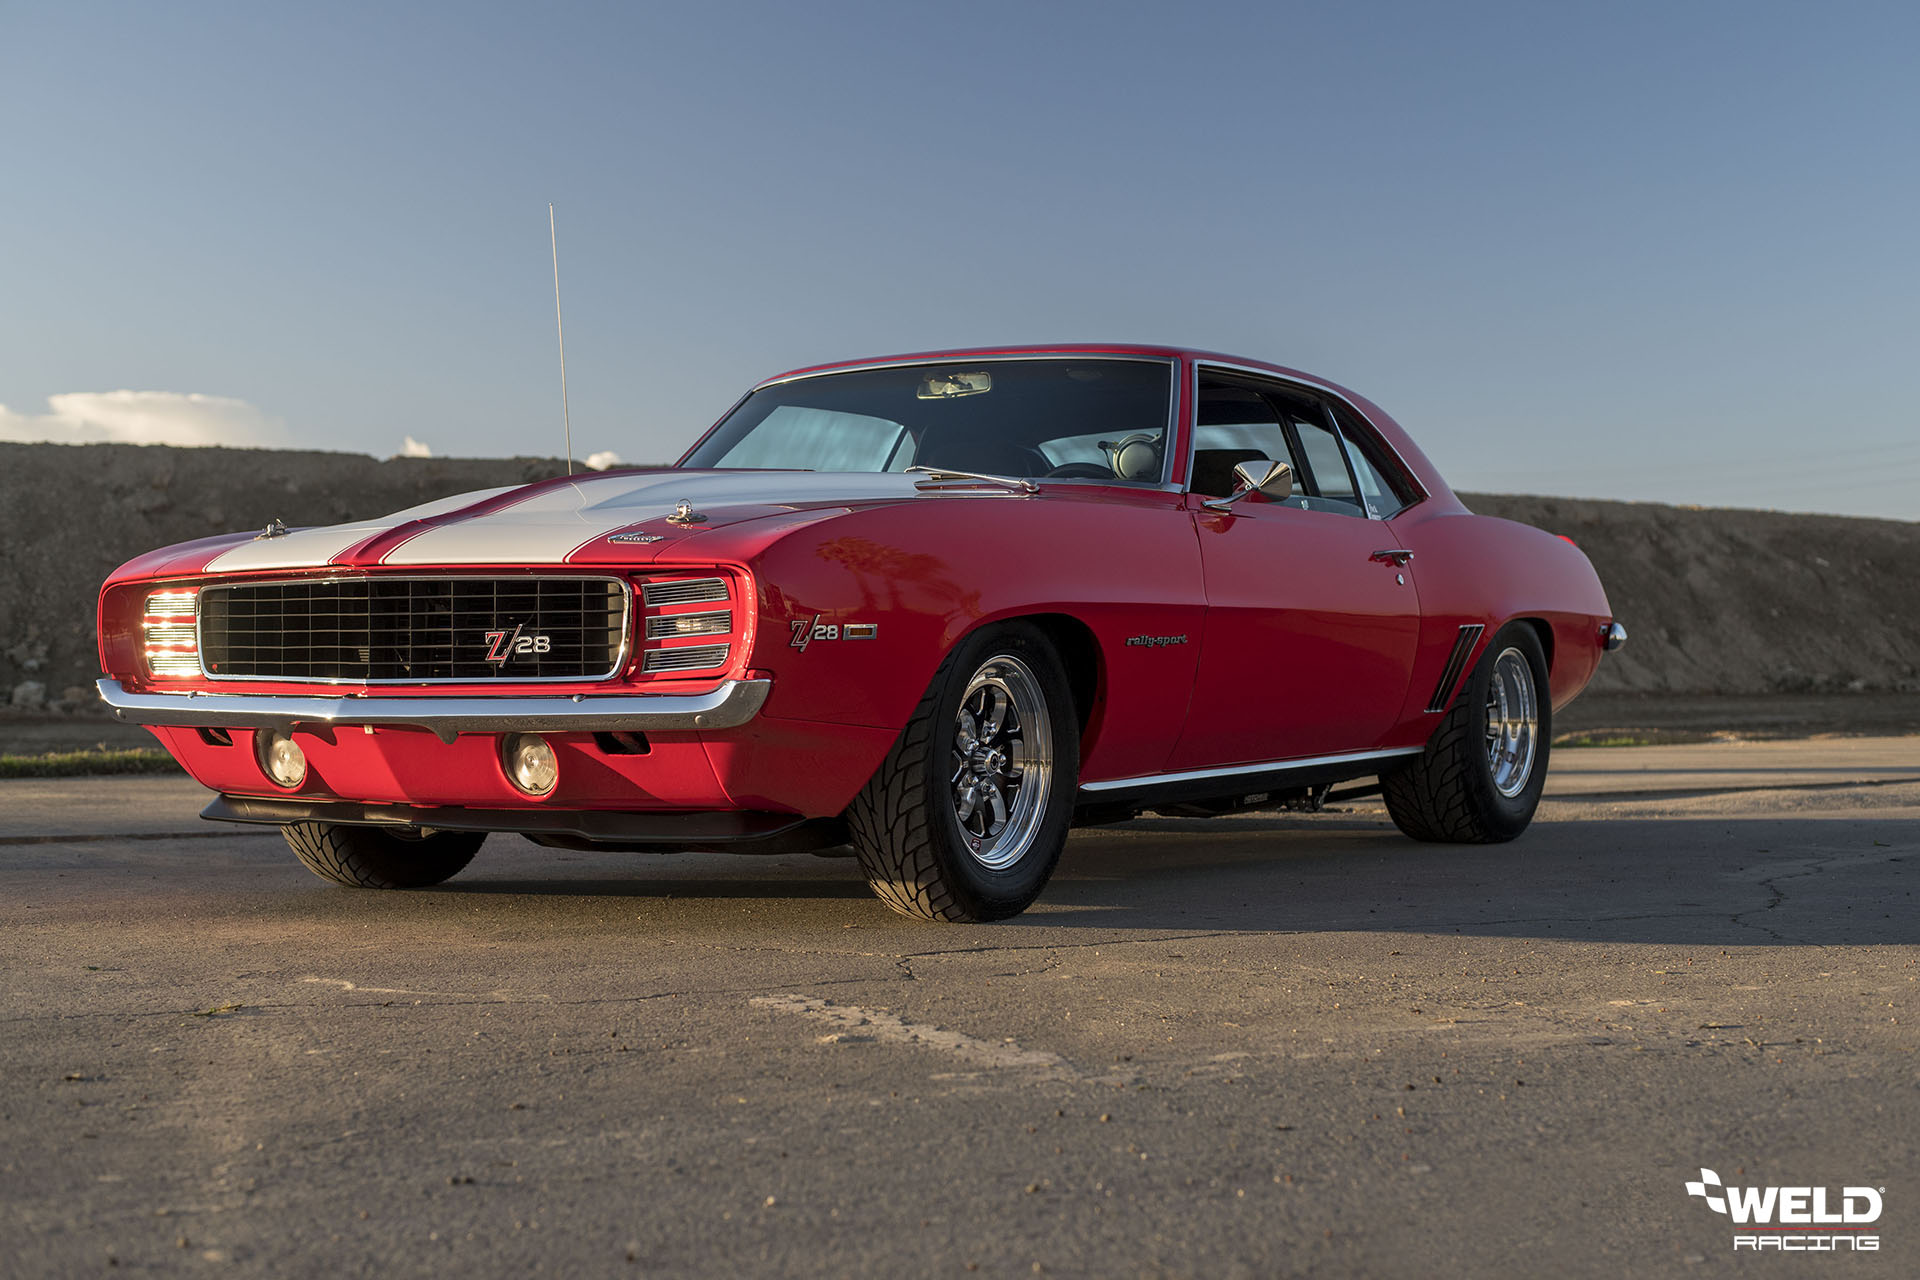 1969 Camaro ZL28 - WELD S76 / Vektor Forged Wheels